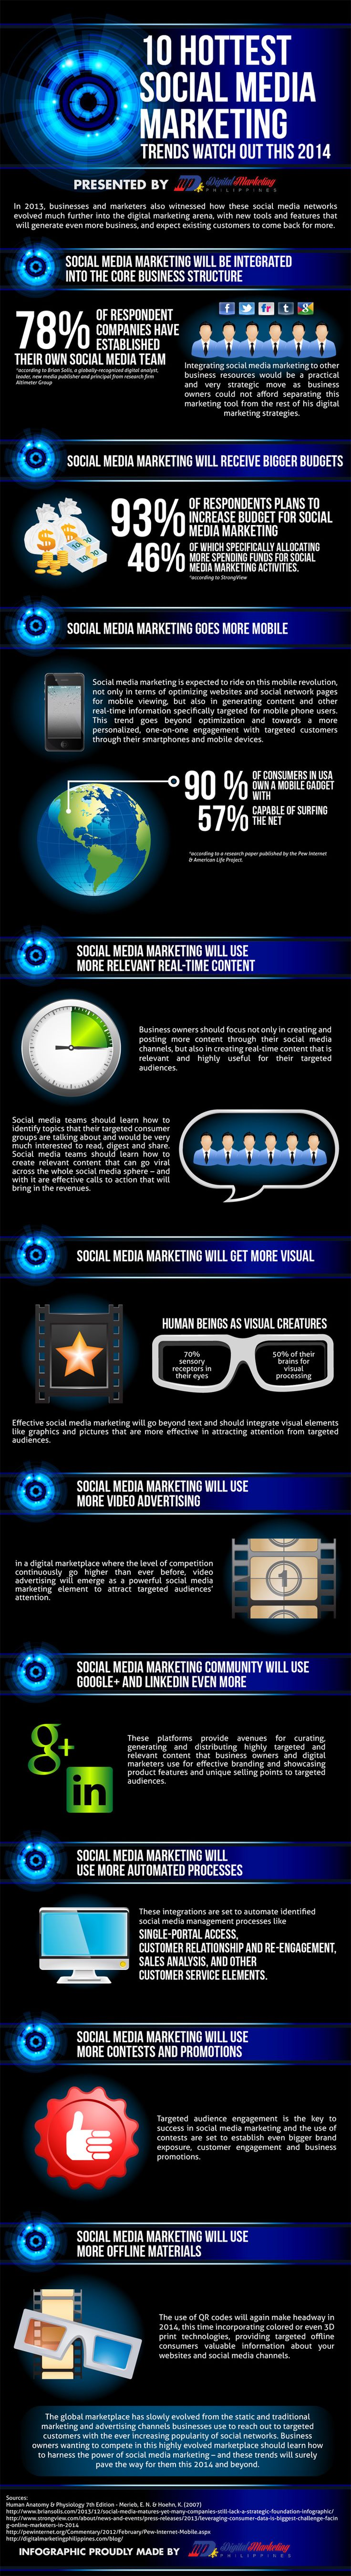 10 Hottest Social Media #Marketing Trends Watch Out This 2014 #Infographic: Digital Marketing, Social Media Marketing, 10 Hottest, Socialmedia Marketing, Marketing Trends, Hottest Socialmediamarket, Trends Watches, 2014 Infographic, Socialmediamarket Trends